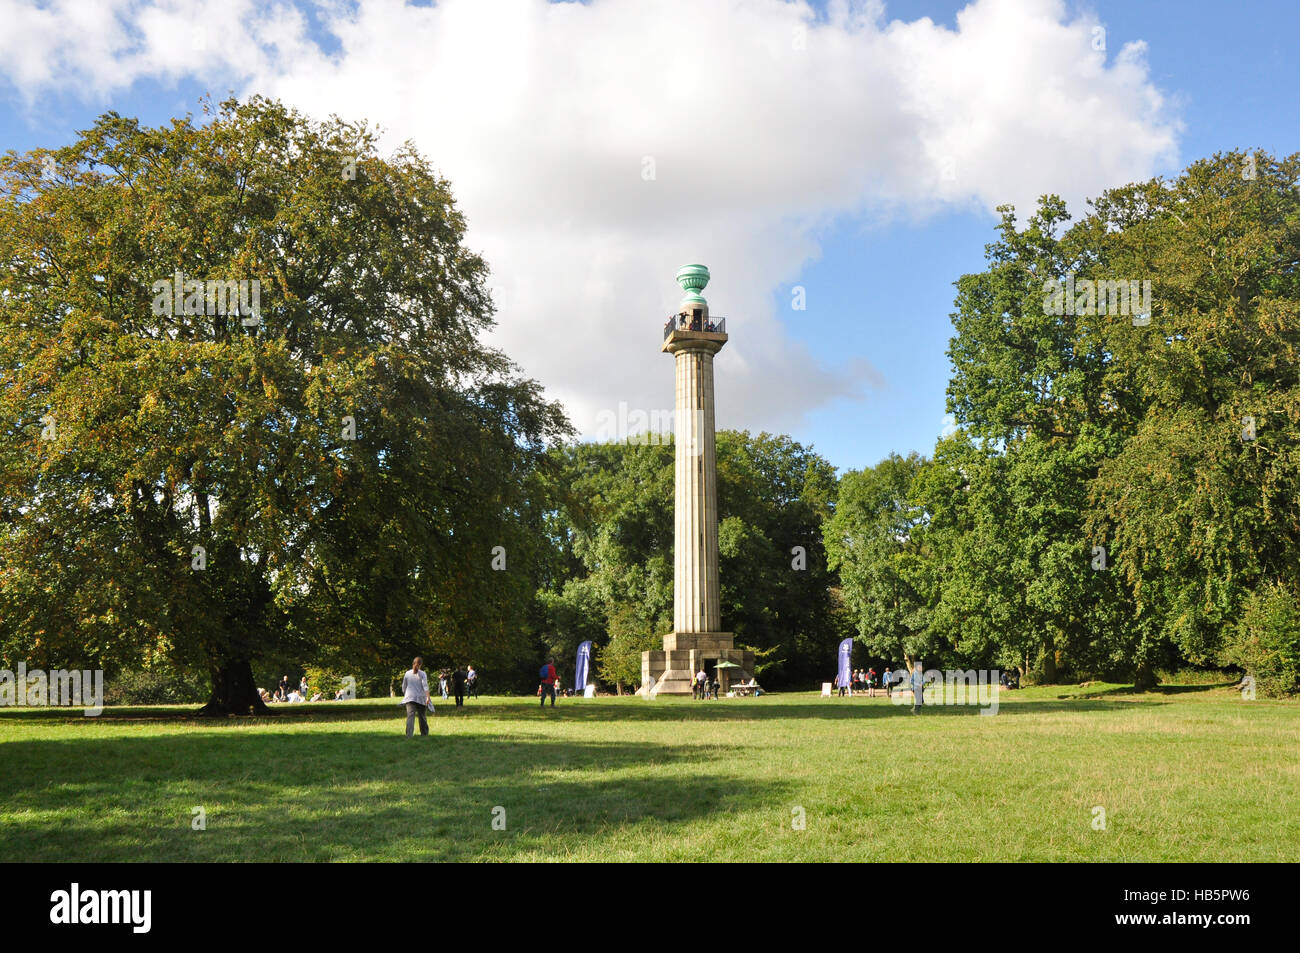 Chiltern Hills - Ashridge - an open day at the Bridgewater monument - framed by early autumn trees - sunlight and - Stock Image